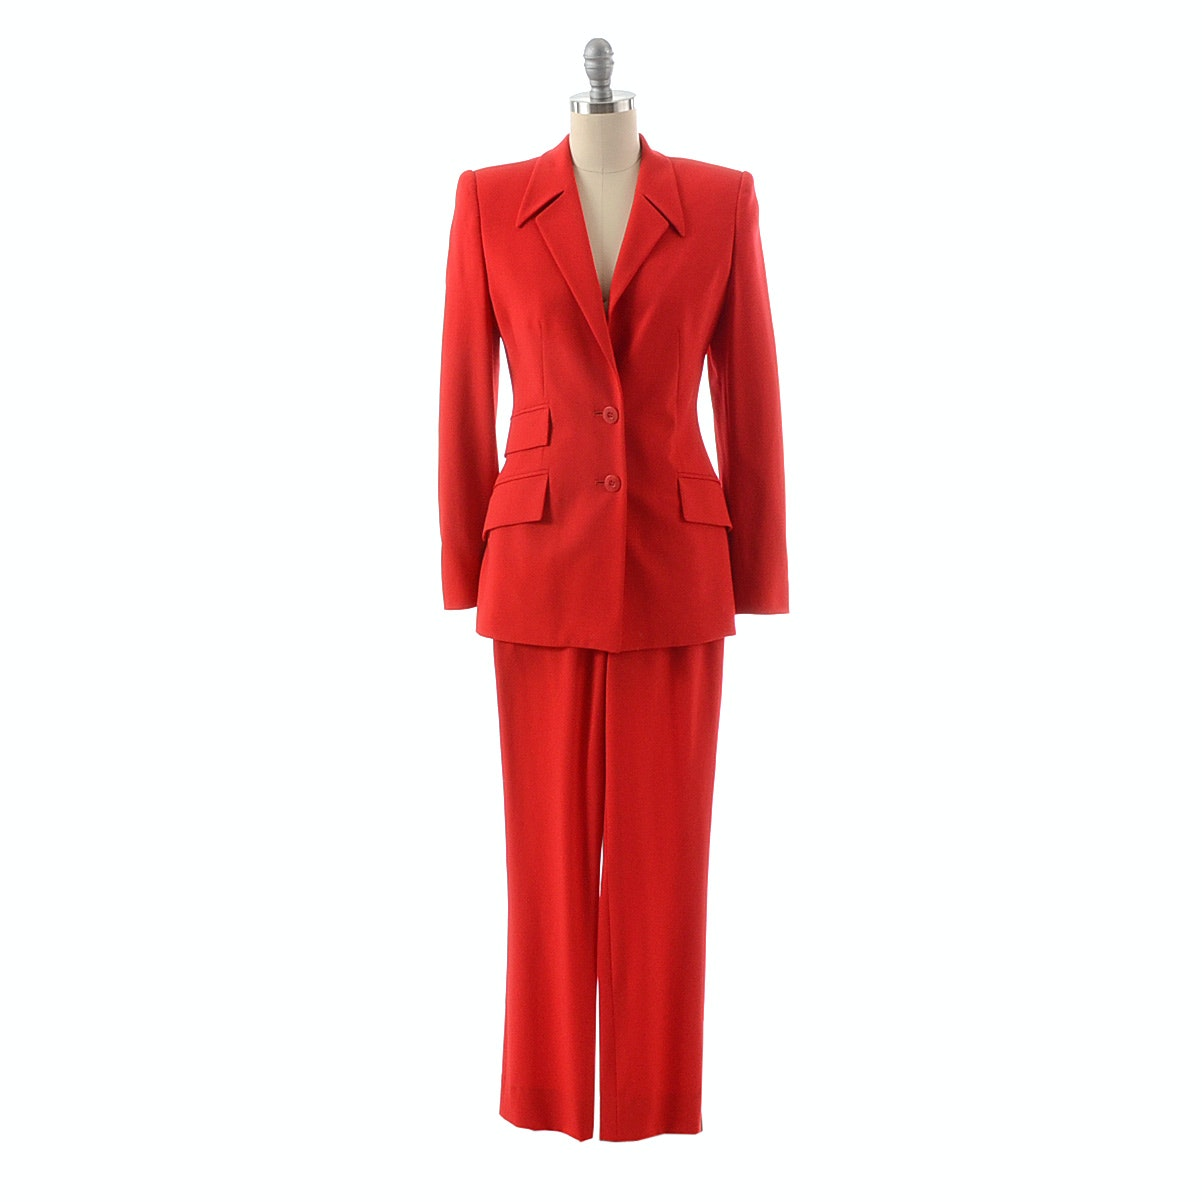 Escada by Margaretha Ley Women's Pant Suit